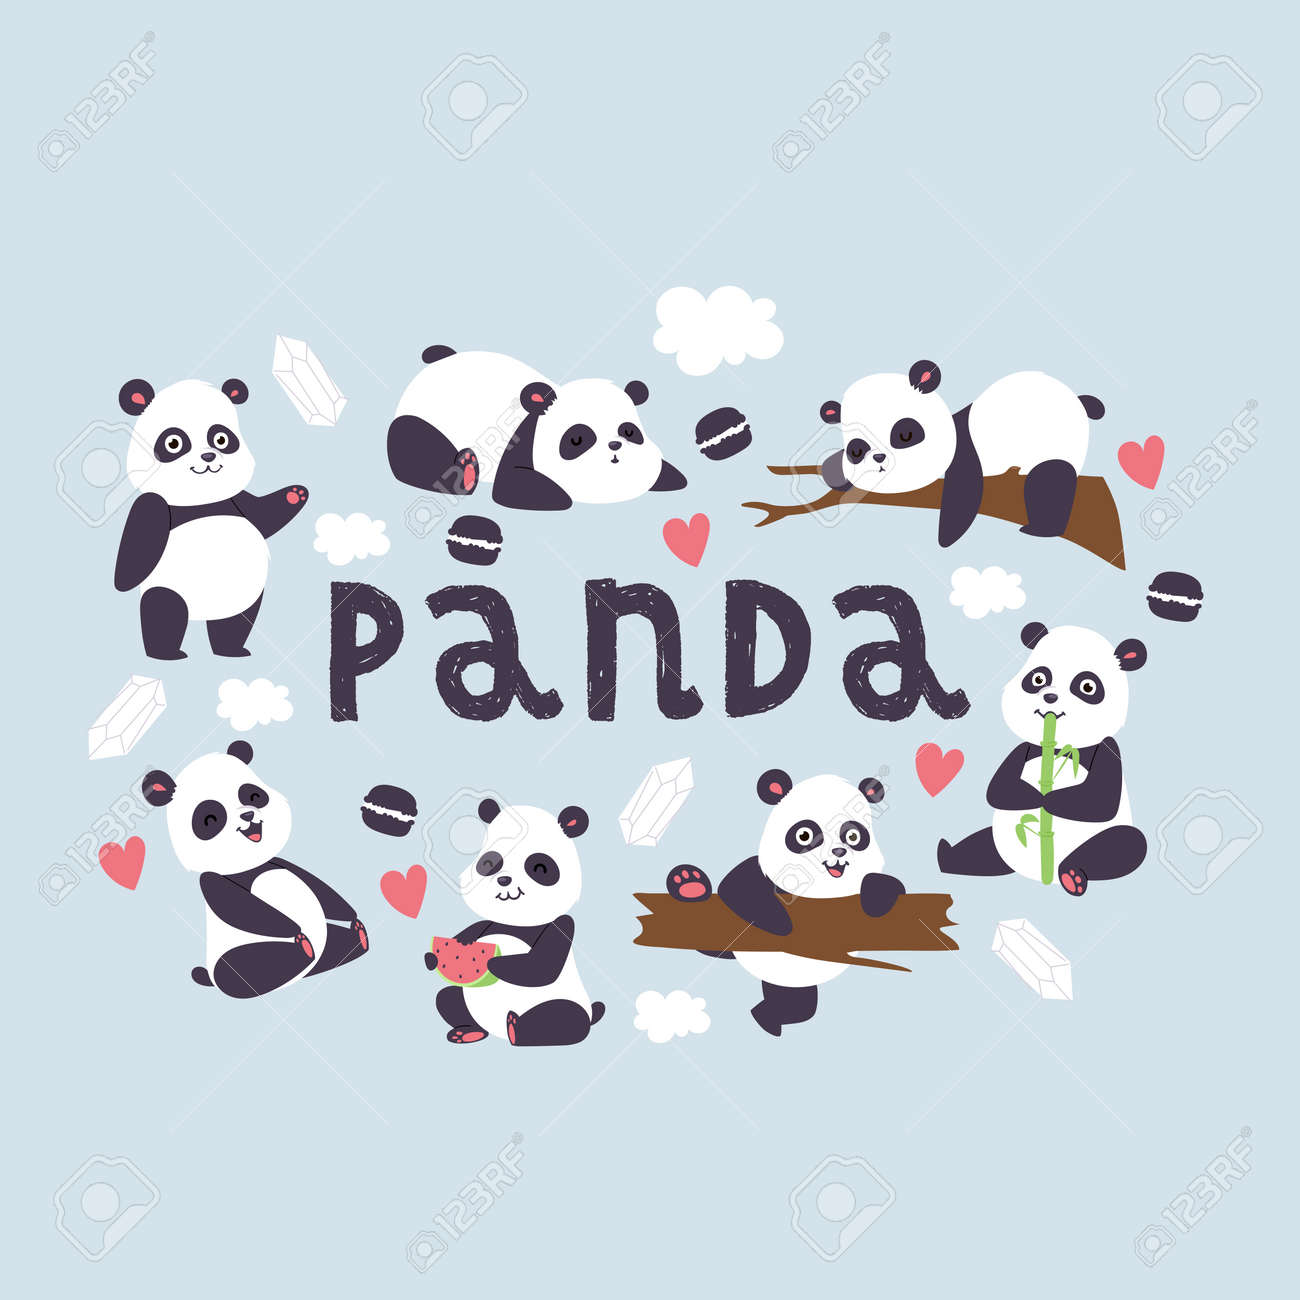 Panda Vector Bearcat Chinese Bear With Bamboo In Love Playing Royalty Free Cliparts Vectors And Stock Illustration Image 123109557